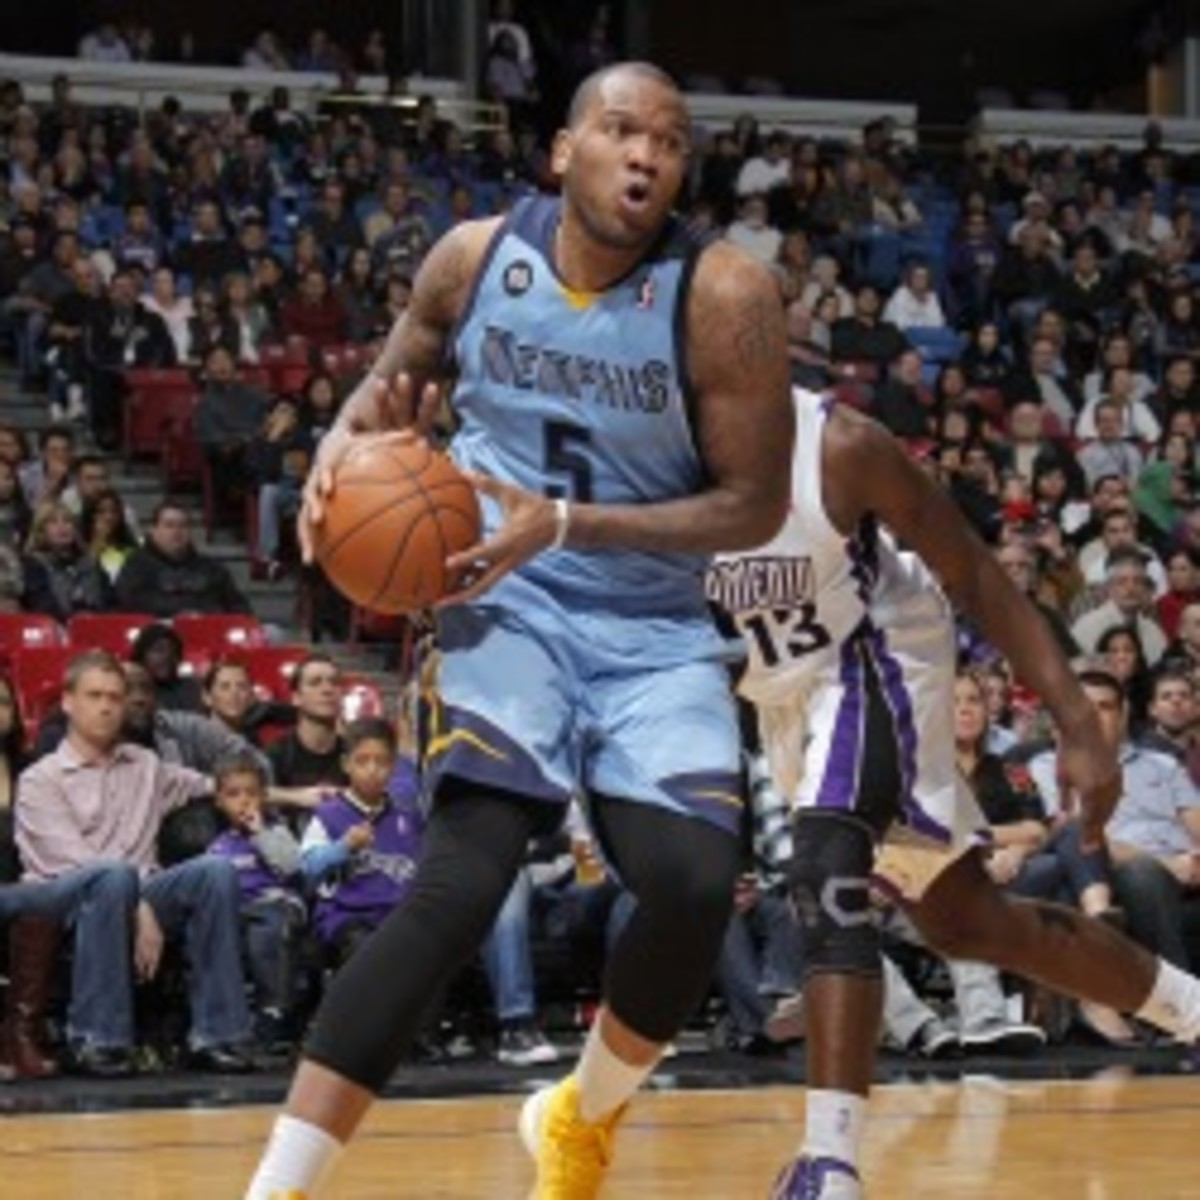 The Grizzlies traded forward Marreese Speights to the Cavaliers. (Rocky Widner/NBA/Getty Images)